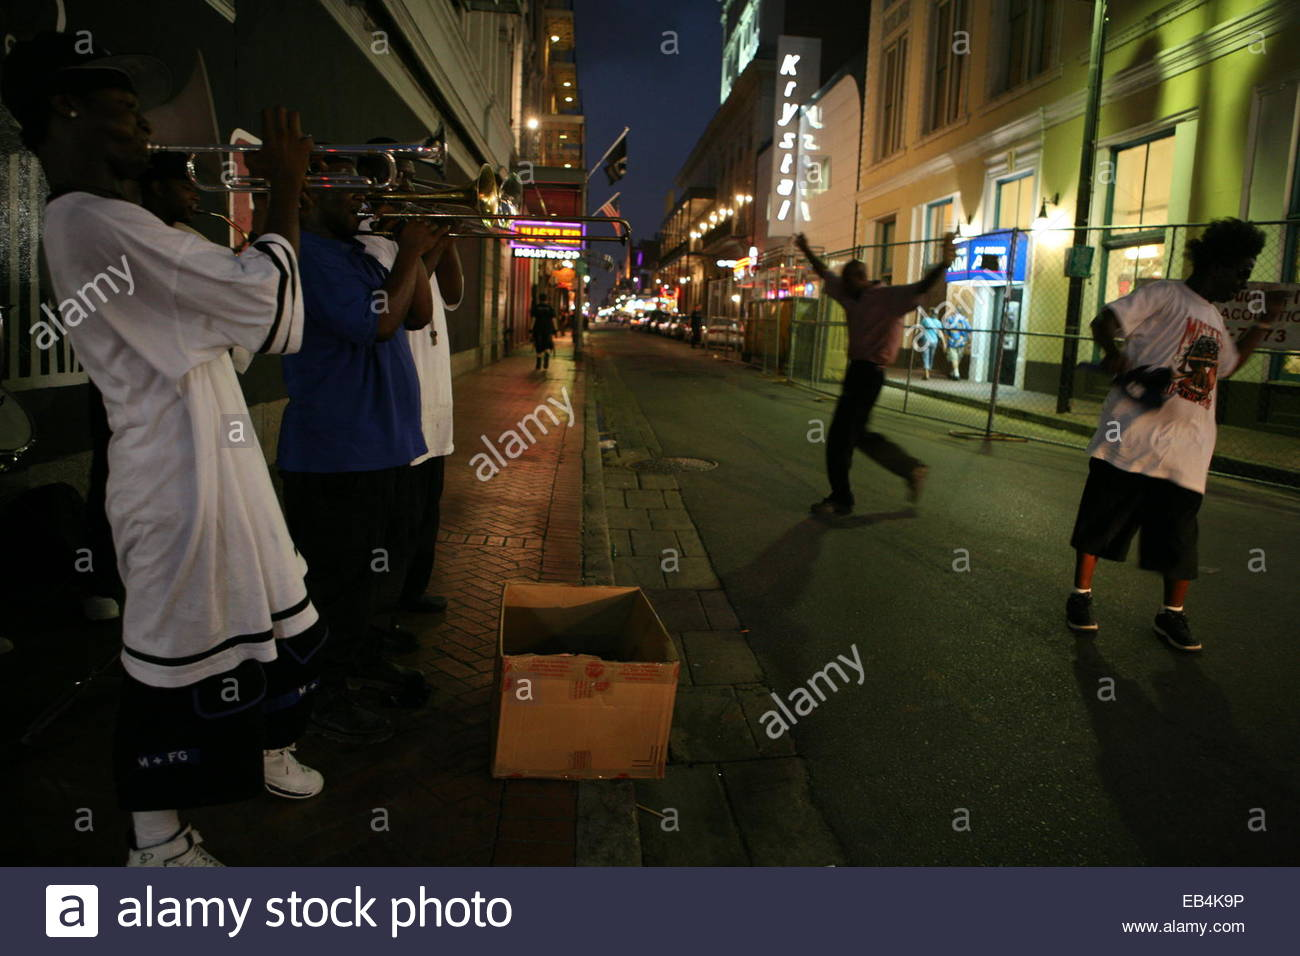 Dancing to music played on a street corner in the French Quarter of New Orleans. - Stock Image